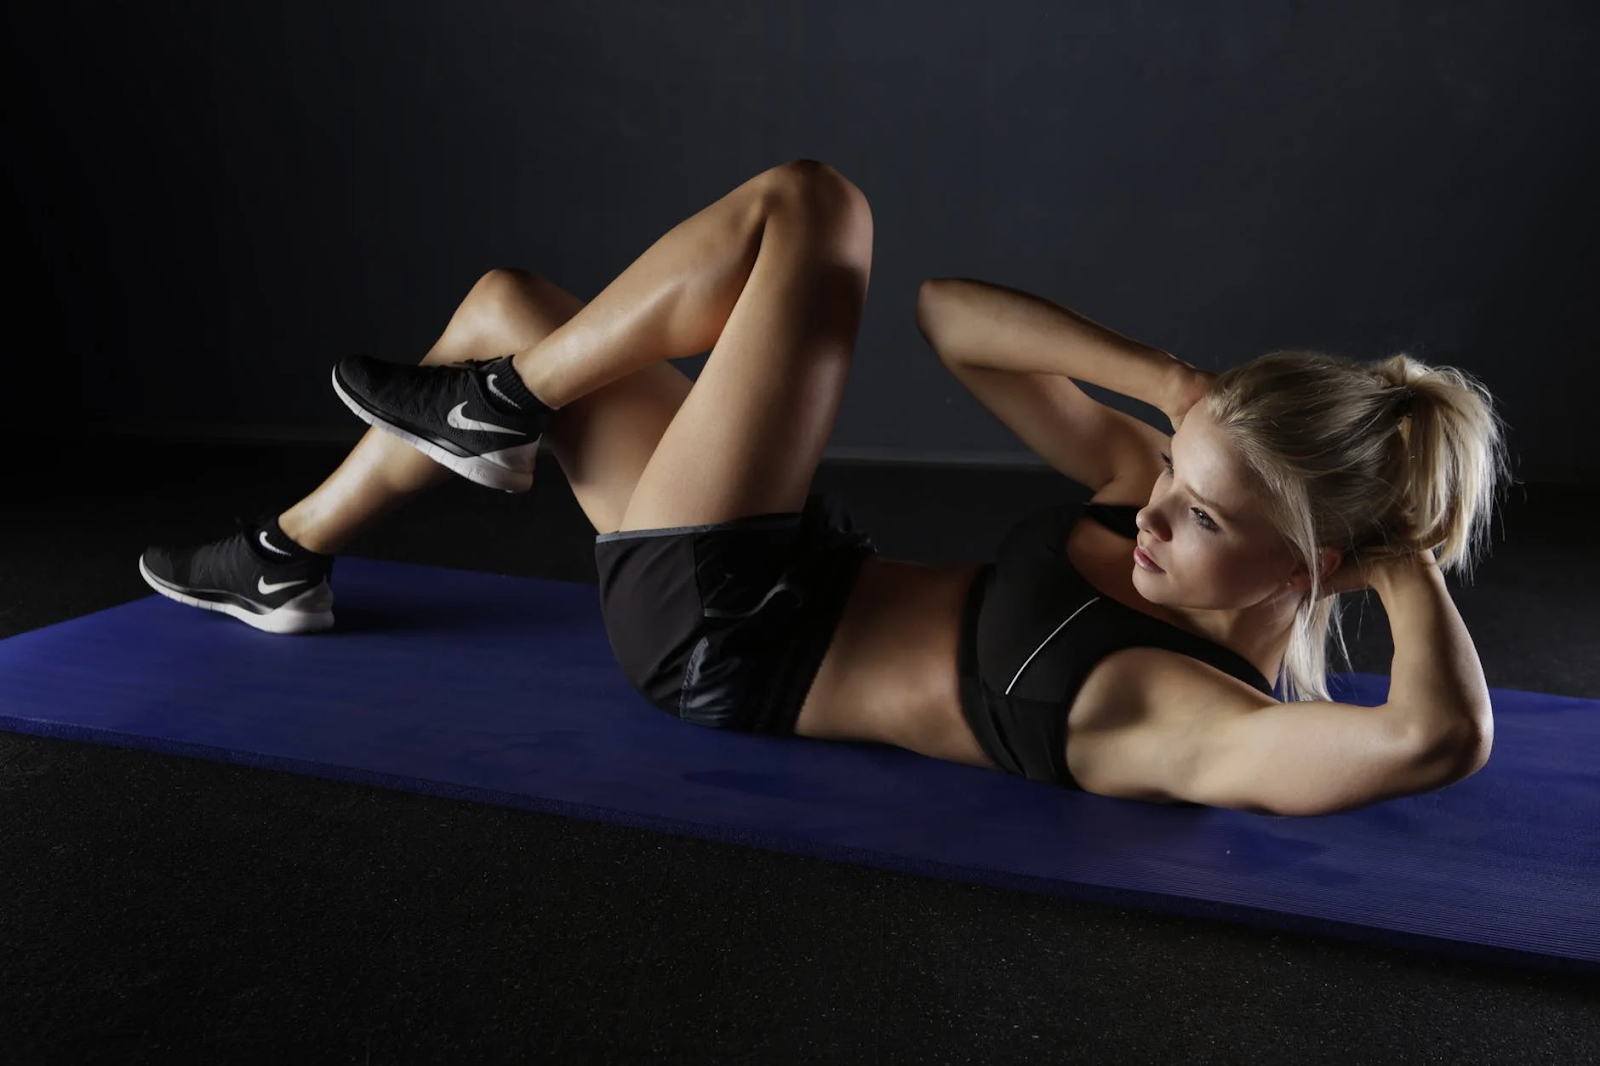 3 Top Tips To Ease Back Into A workout Routine Post the Covid-19 Pandemic